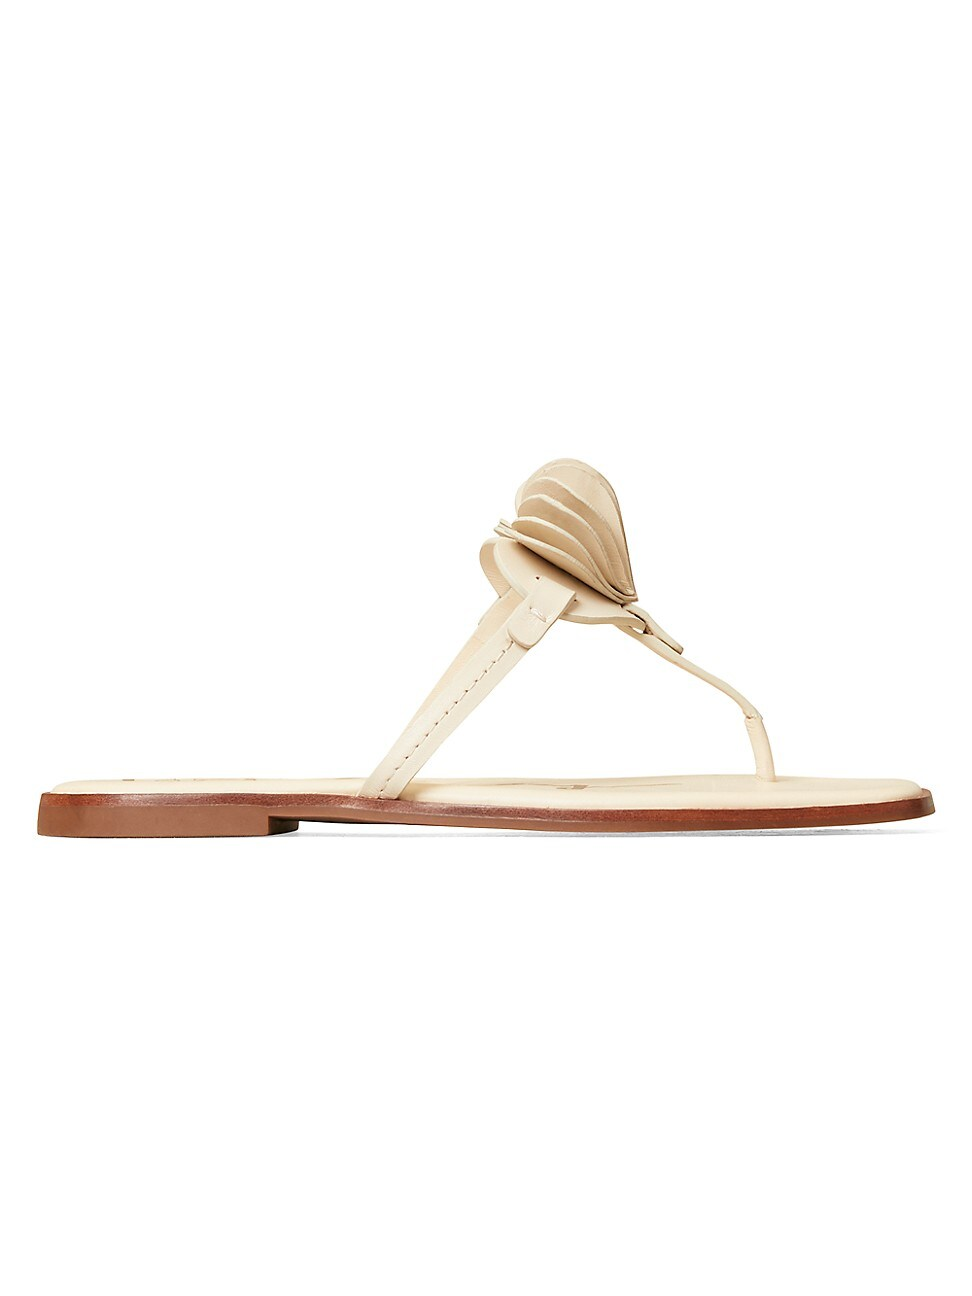 Tory Burch WOMEN'S HEART LEATHER THONG SANDALS